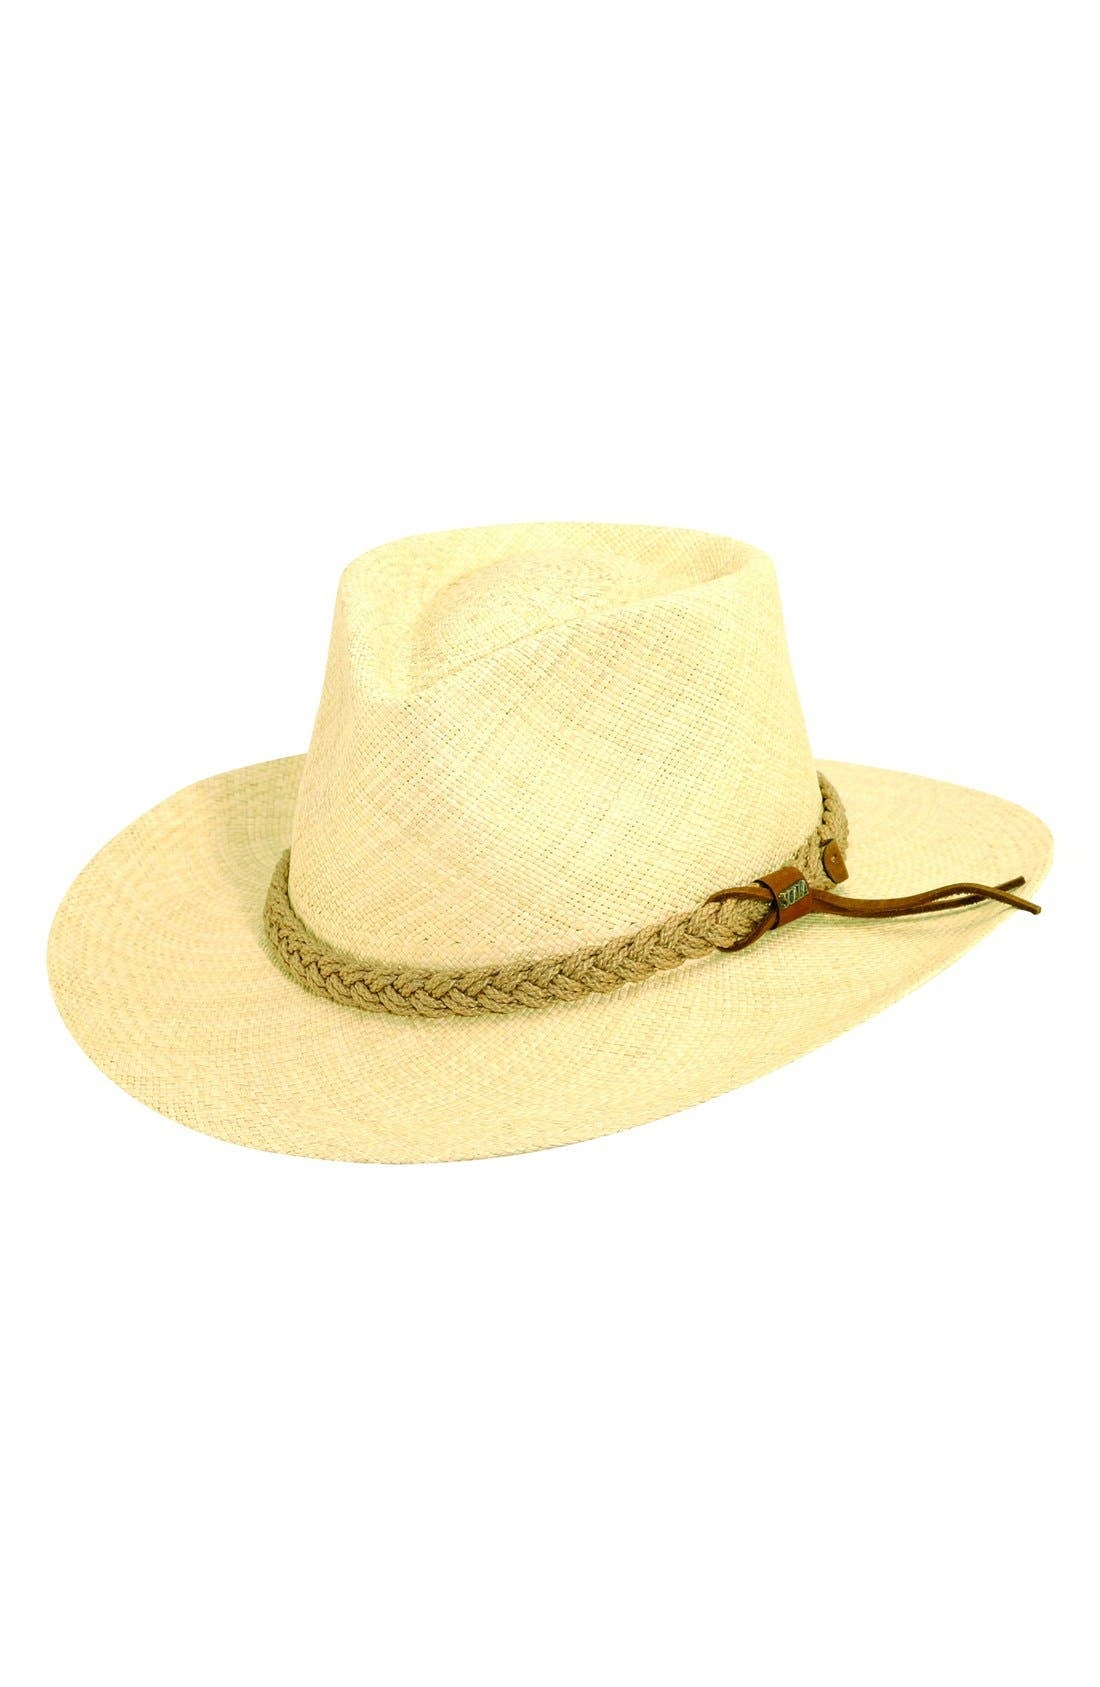 Panama Straw Outback Hat,                             Main thumbnail 1, color,                             109